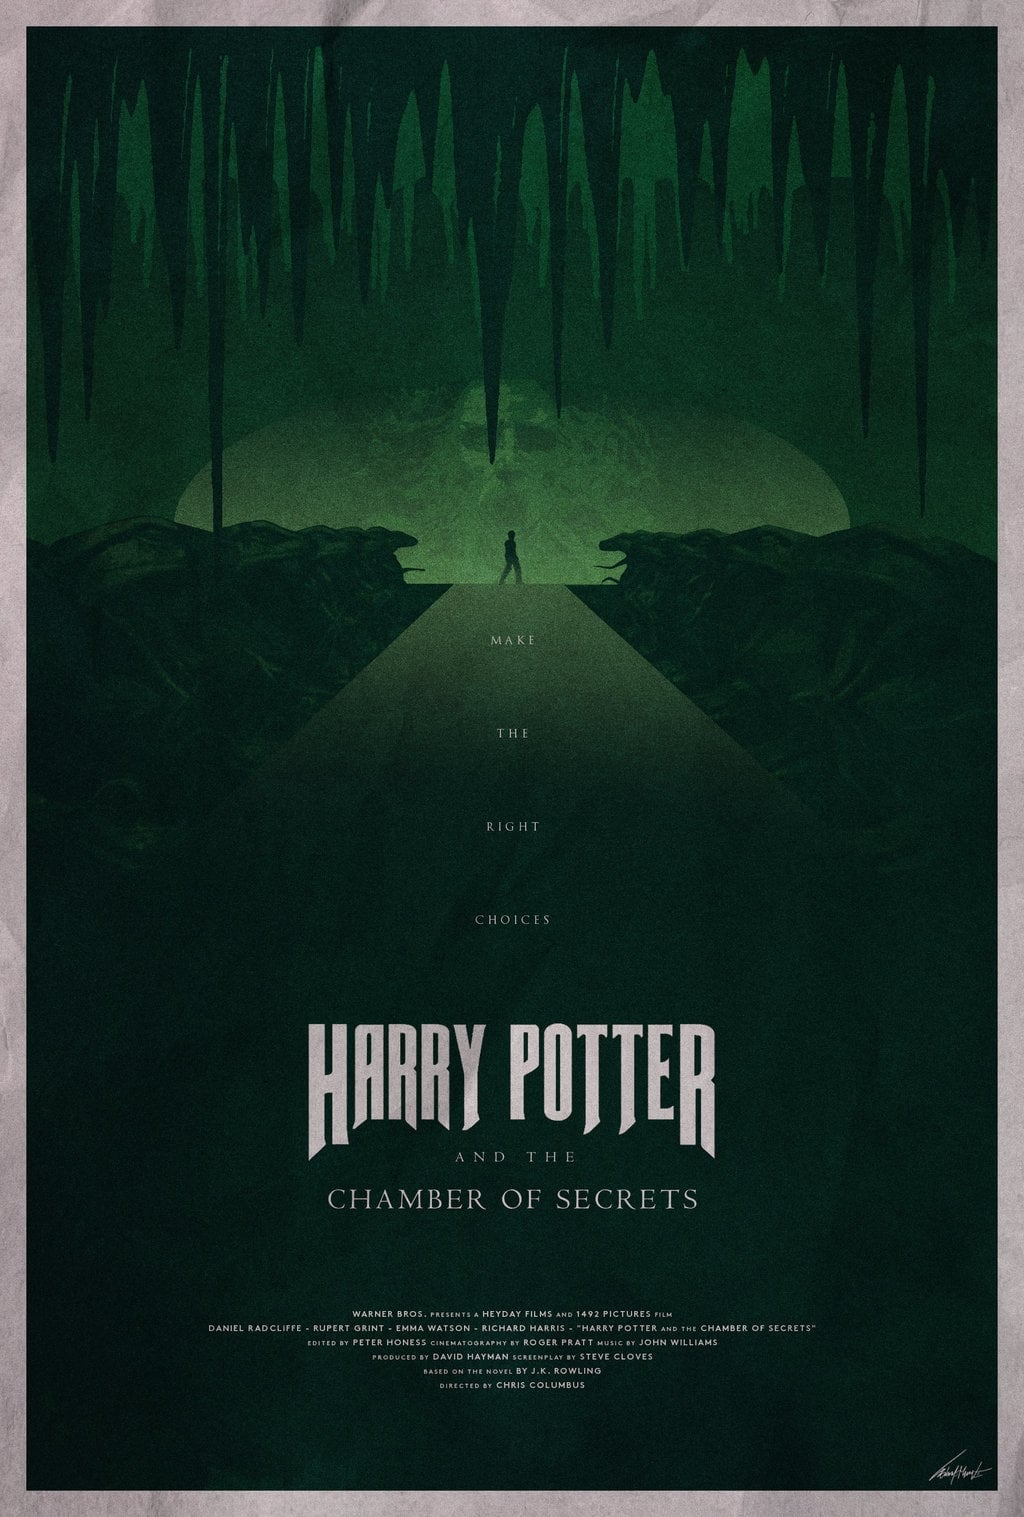 Harry potter et la chambre des secrets 2002 - Regarder harry potter chambre secrets streaming ...